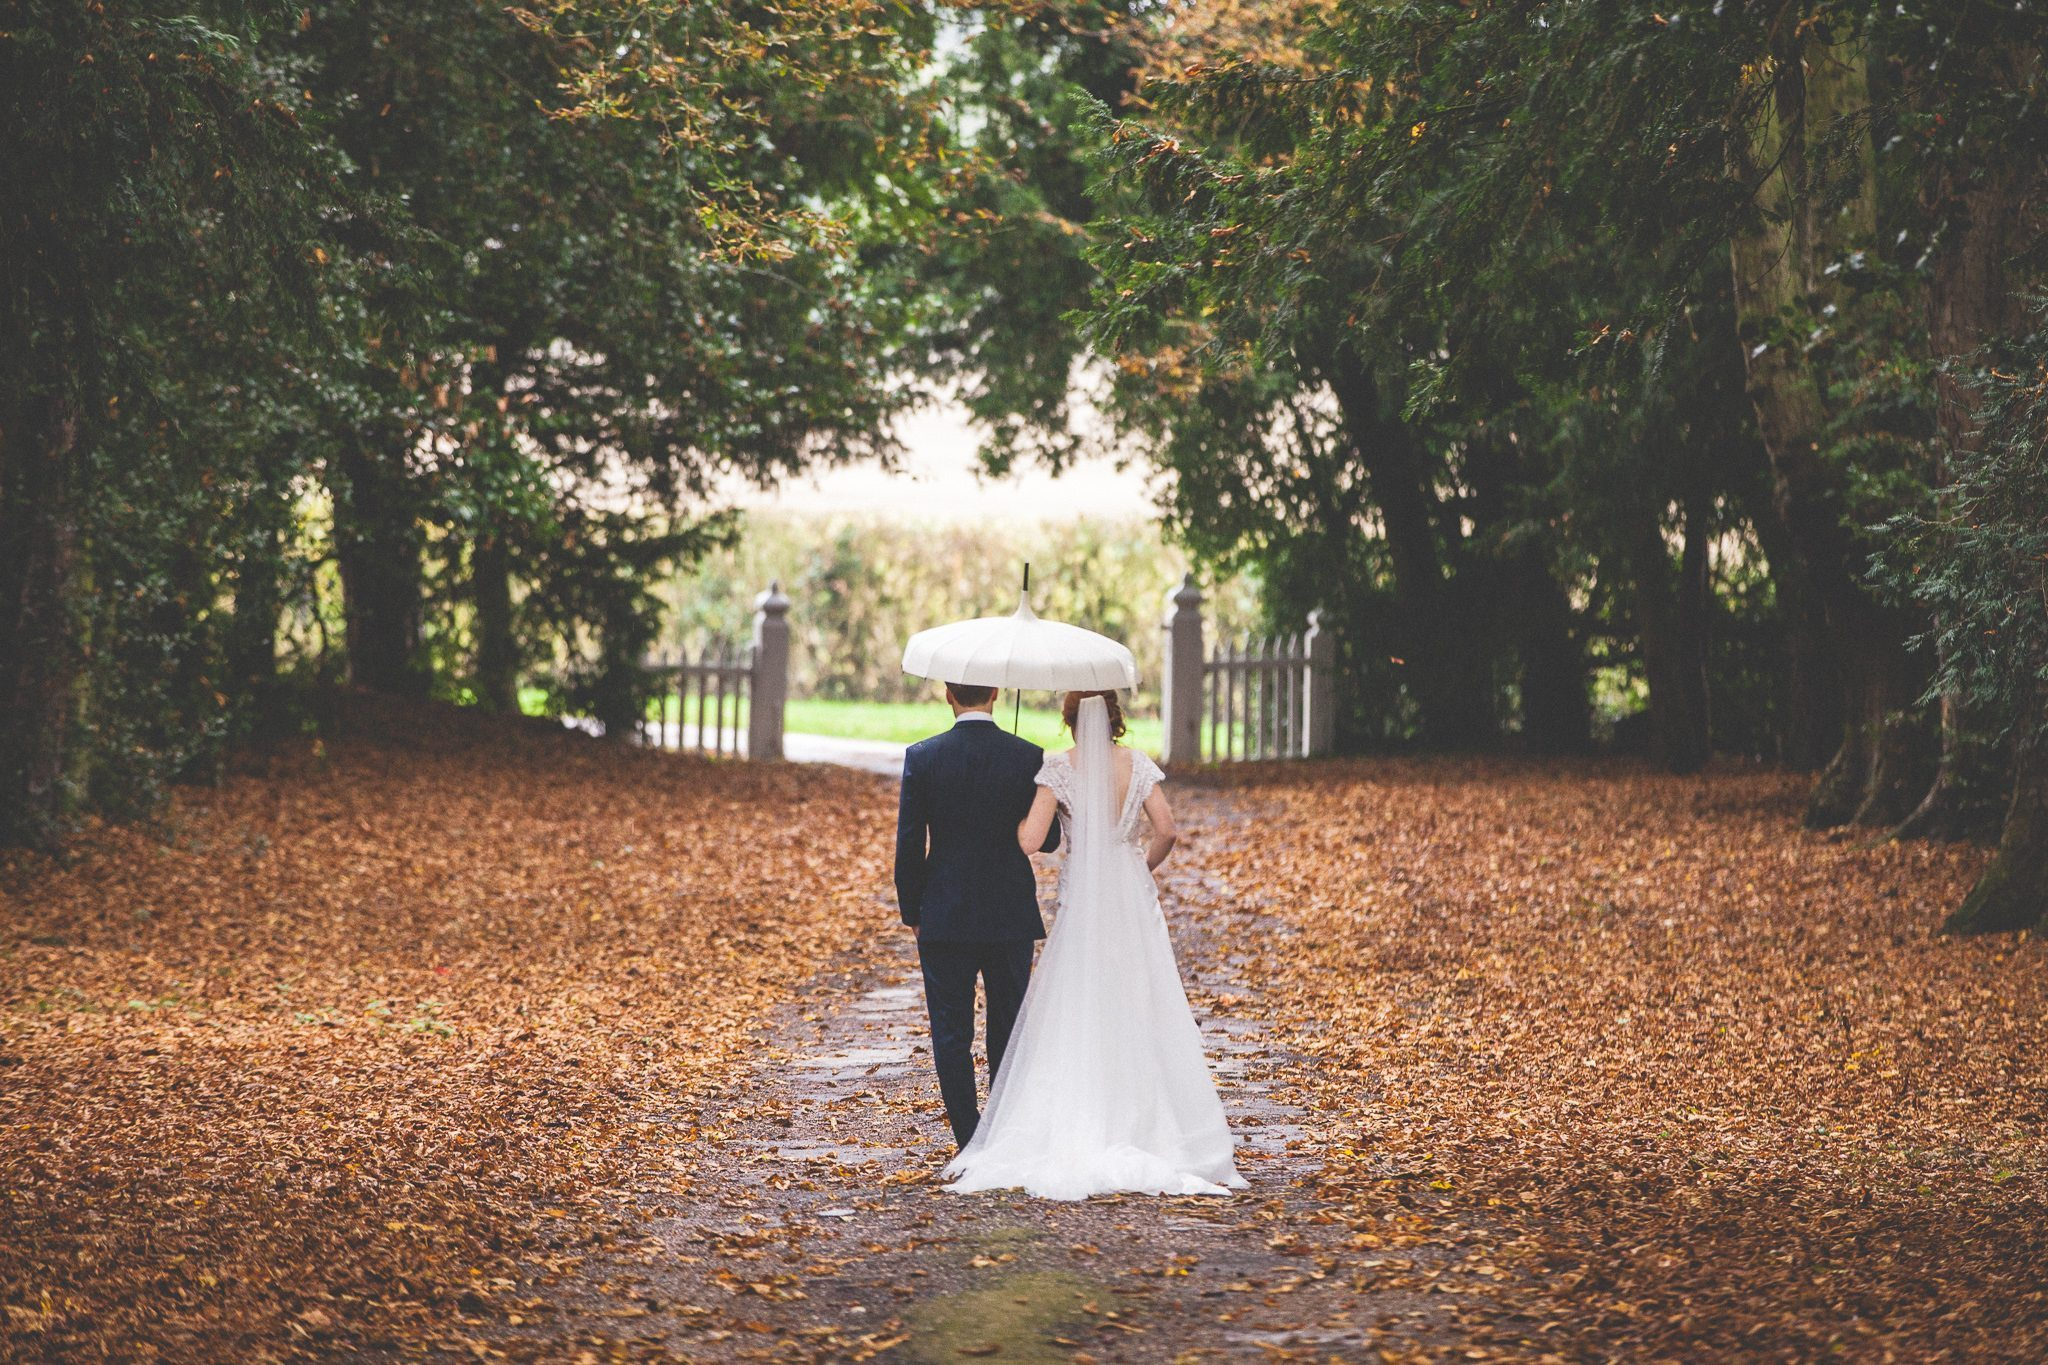 Bride and Groom walking into the sunset at Smeetham Hall Barn wedding venue